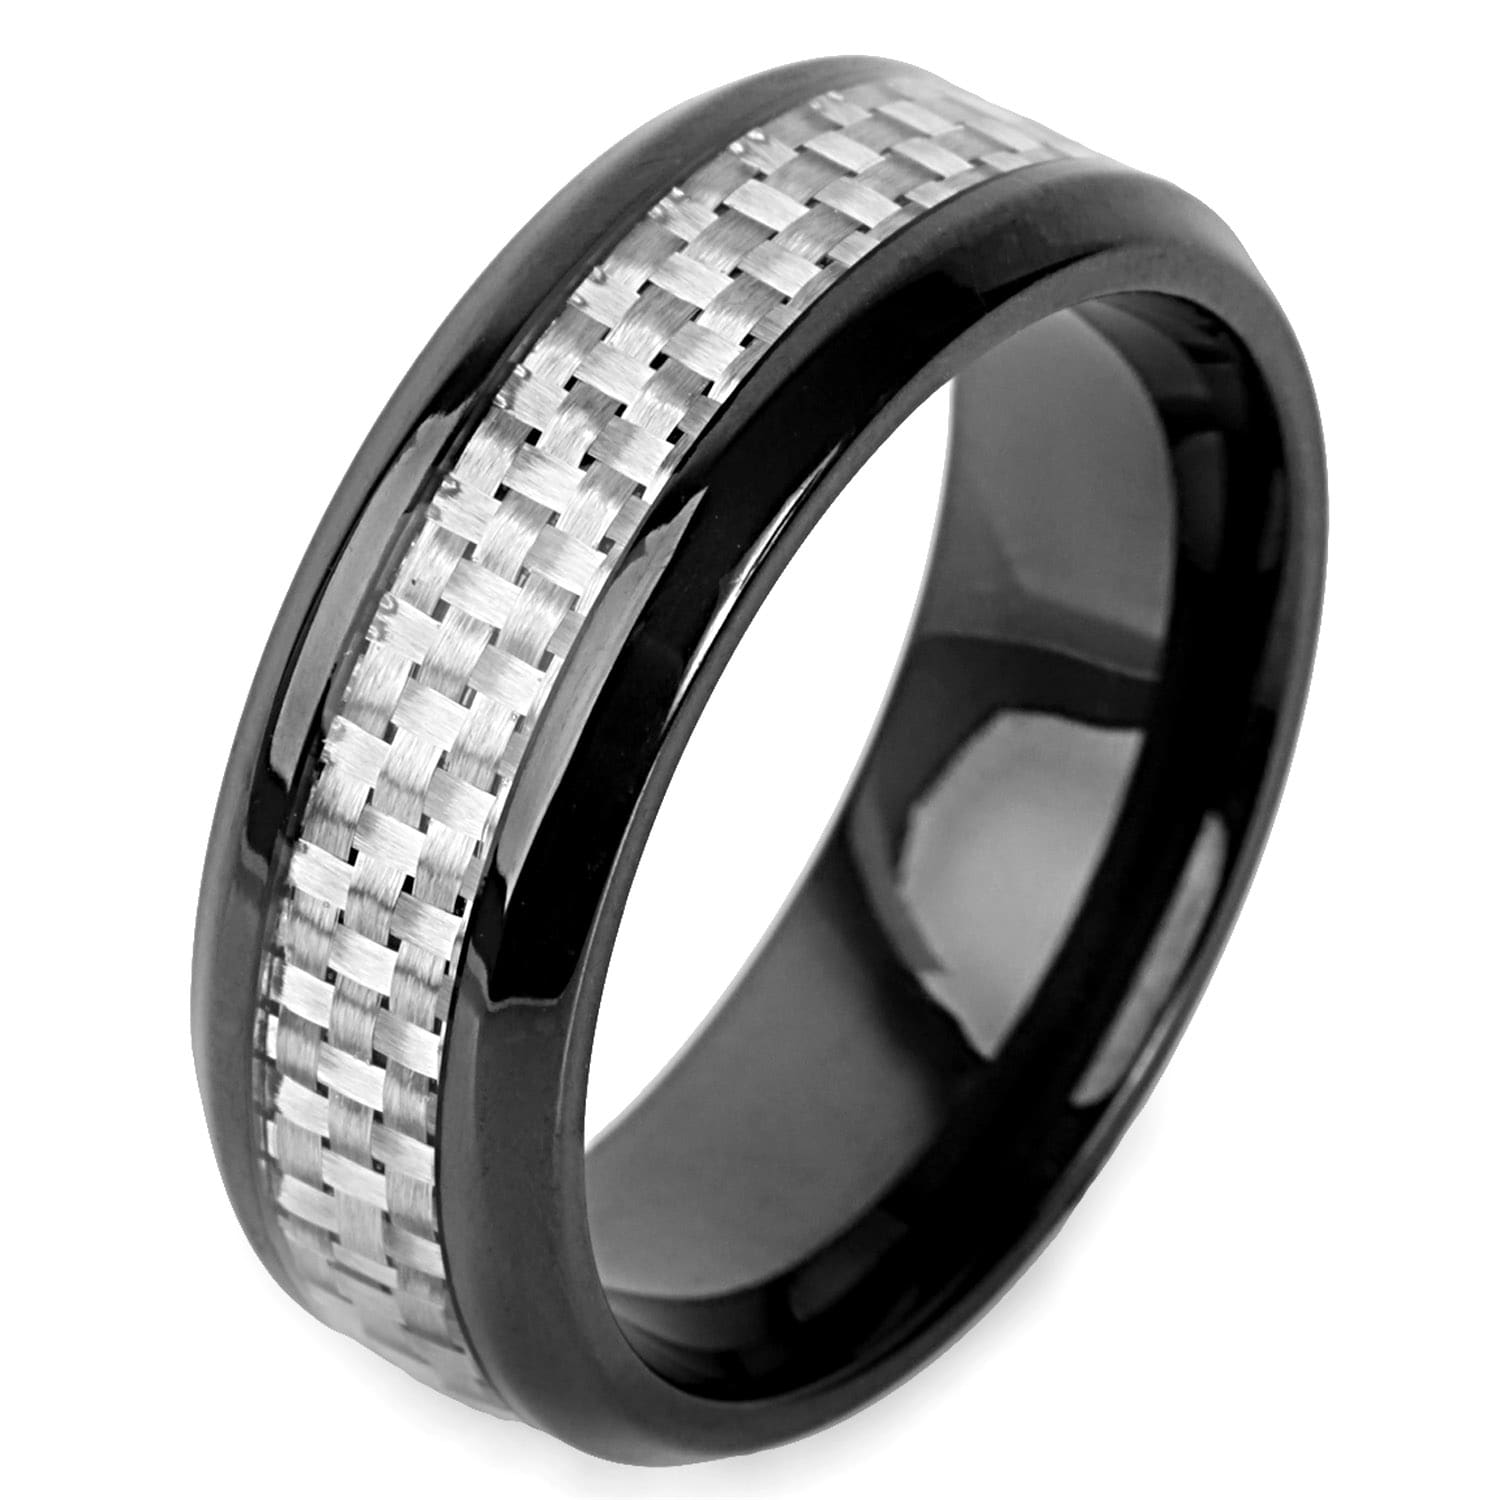 carbon high fiber ring w s fit gray com wedding engagement polish dp rings cobalt comfort inlay band men amazon